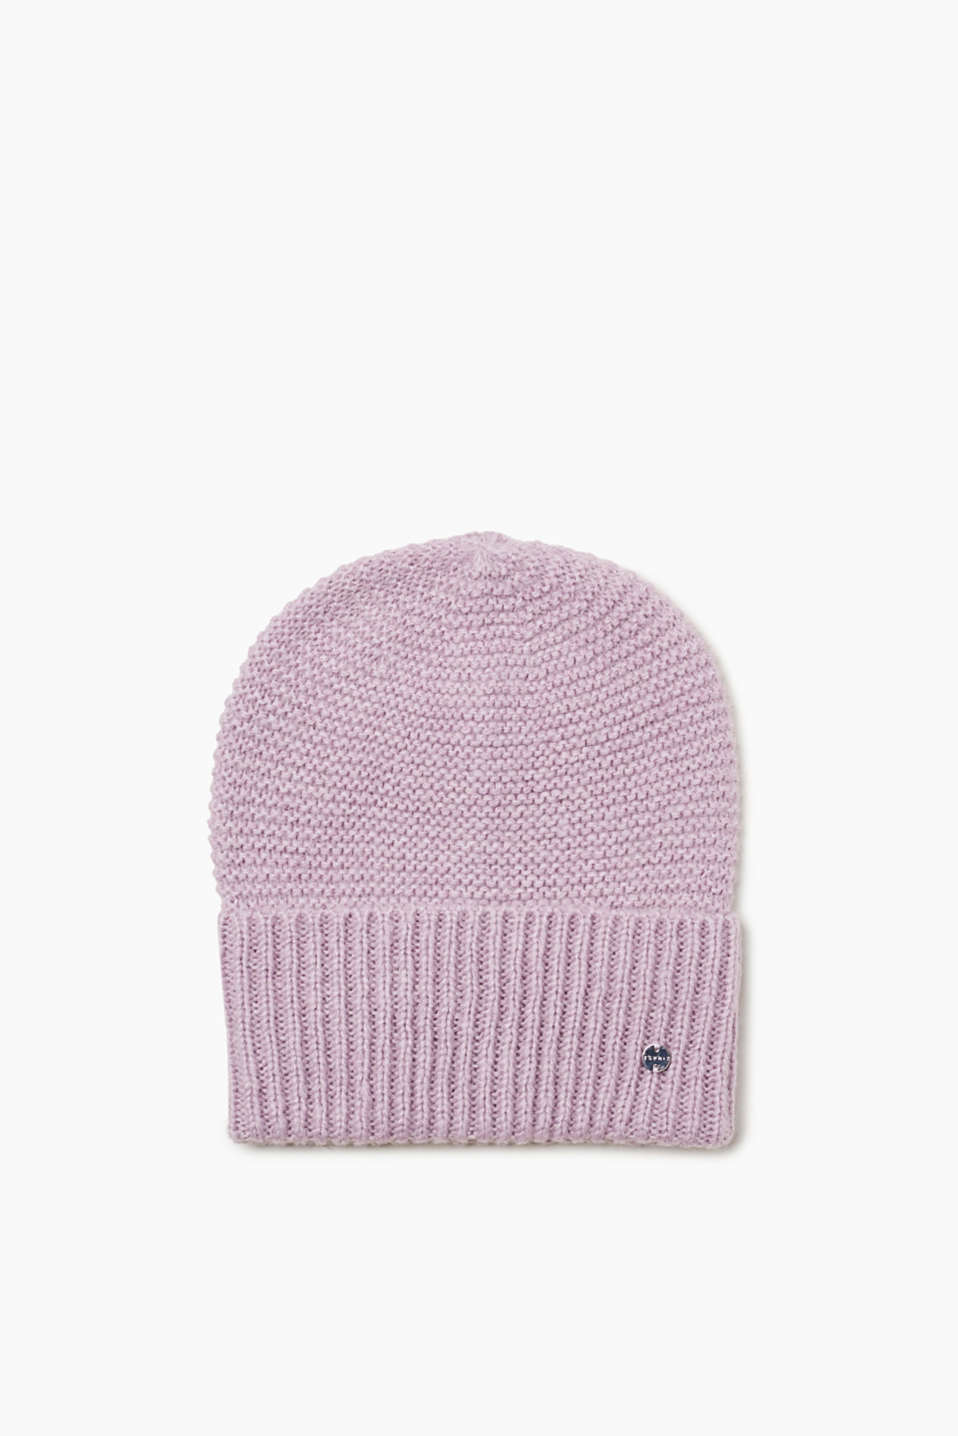 We love knitwear! This beanie impresses with its striking knitted pattern and super-soft material.